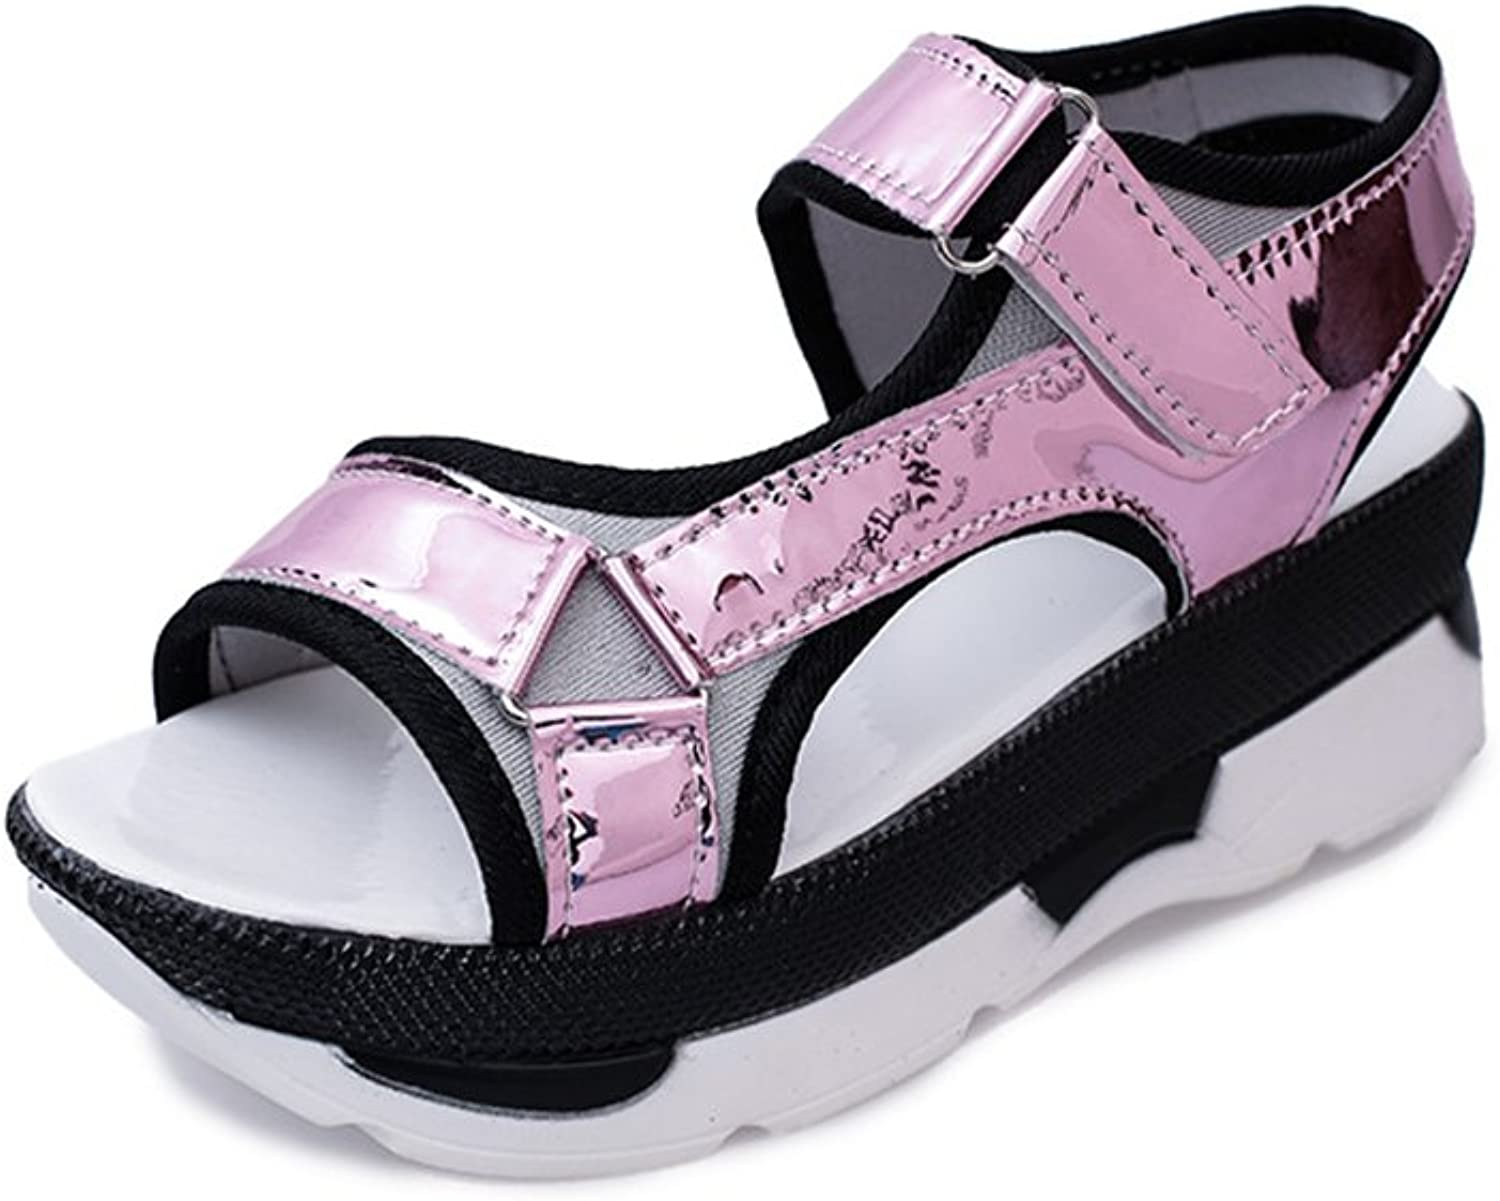 F1rst Rate Women's Summer Must-Haves Fashion Casual Platform Sandals